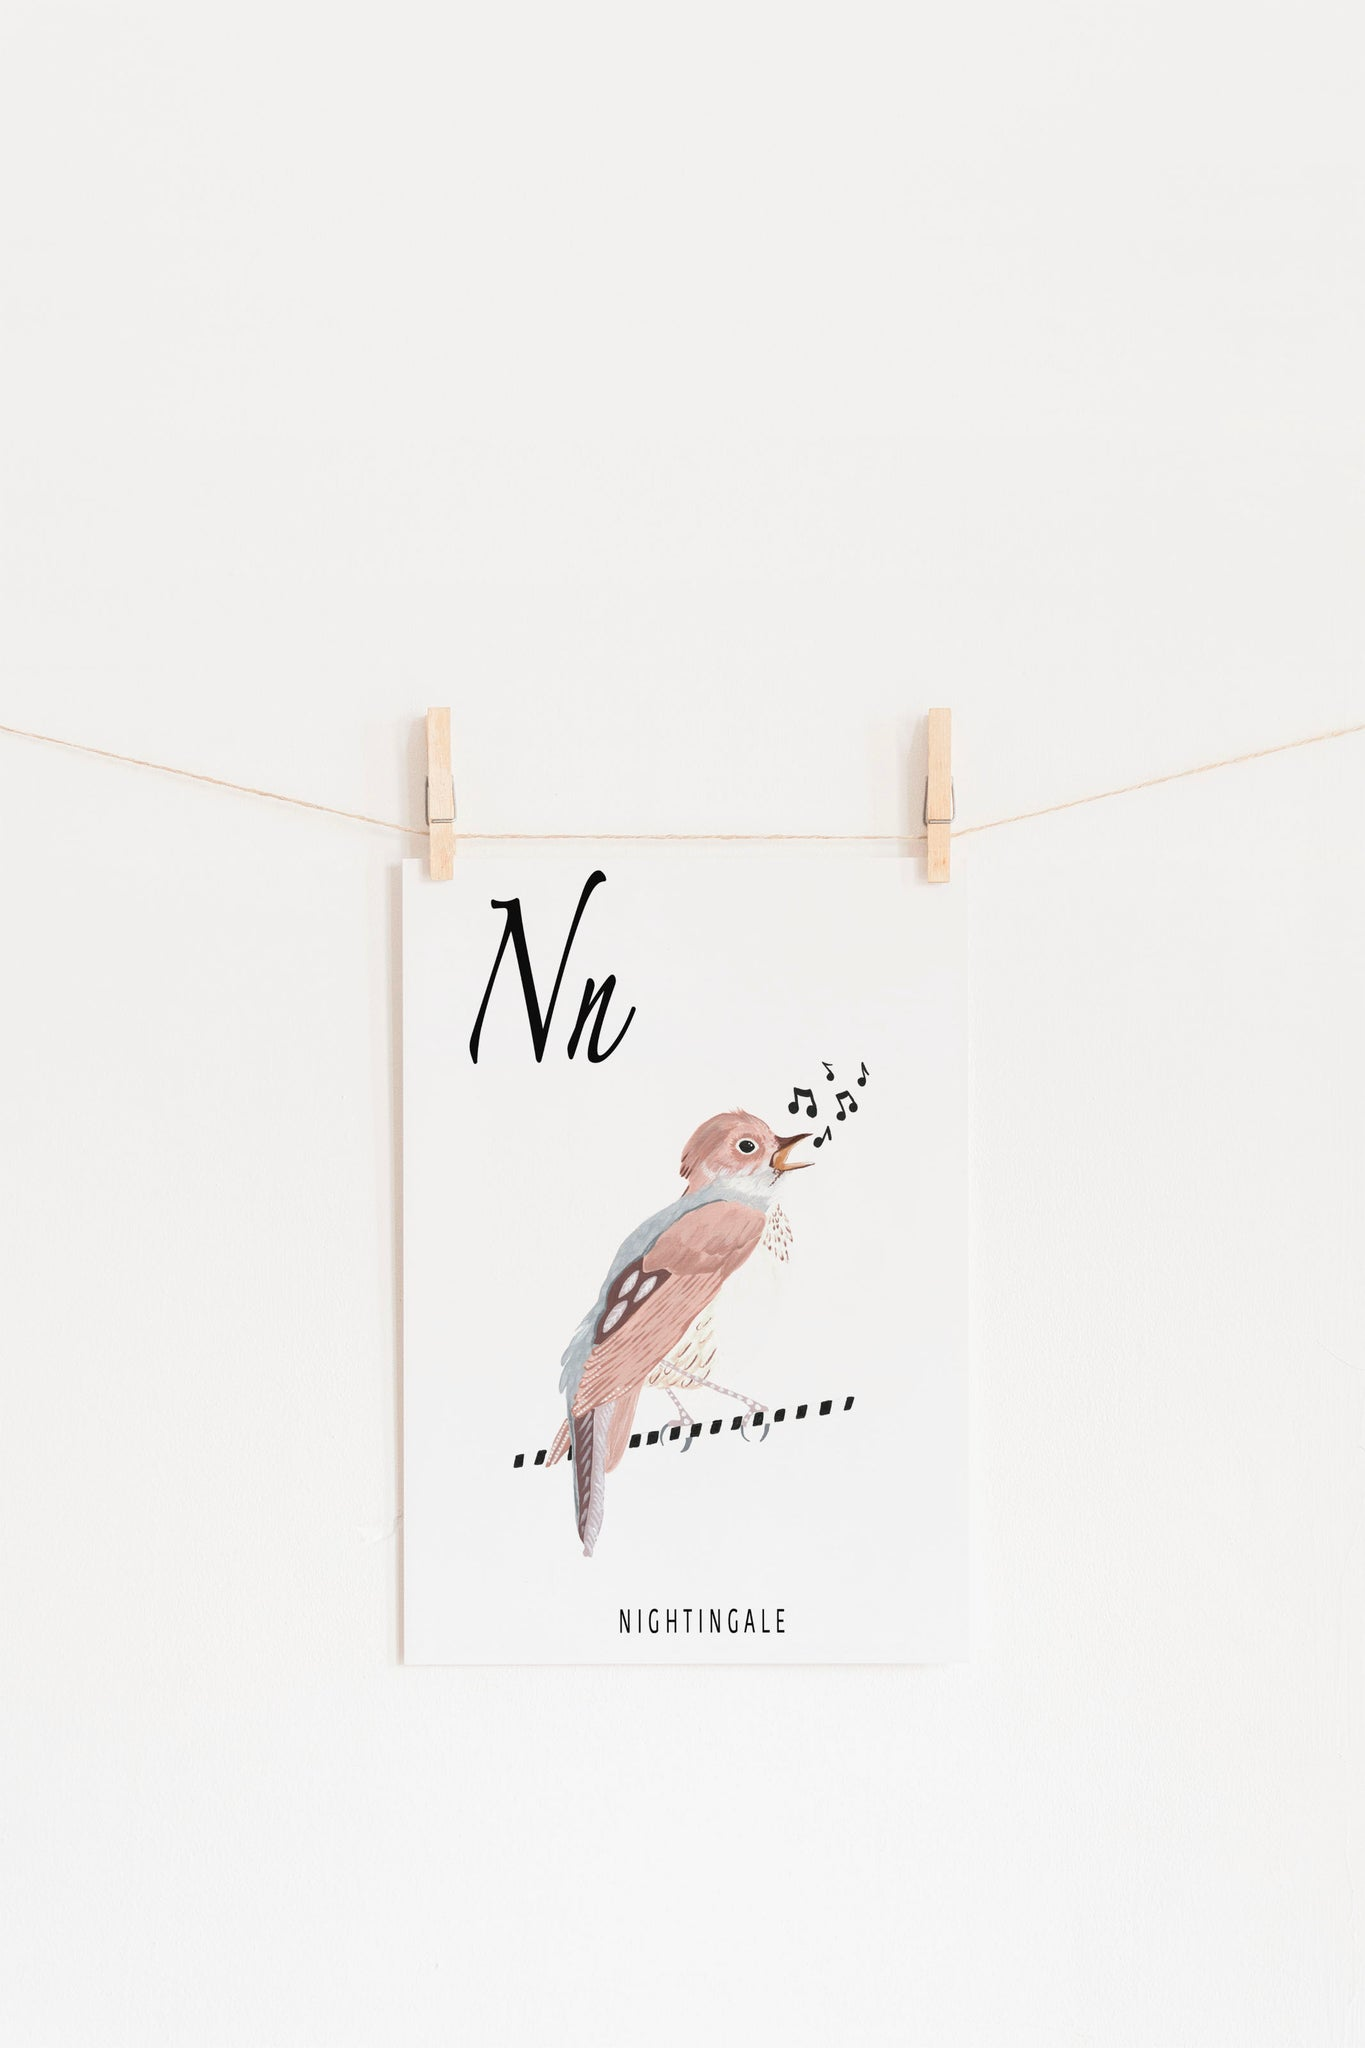 N is for Nightingale